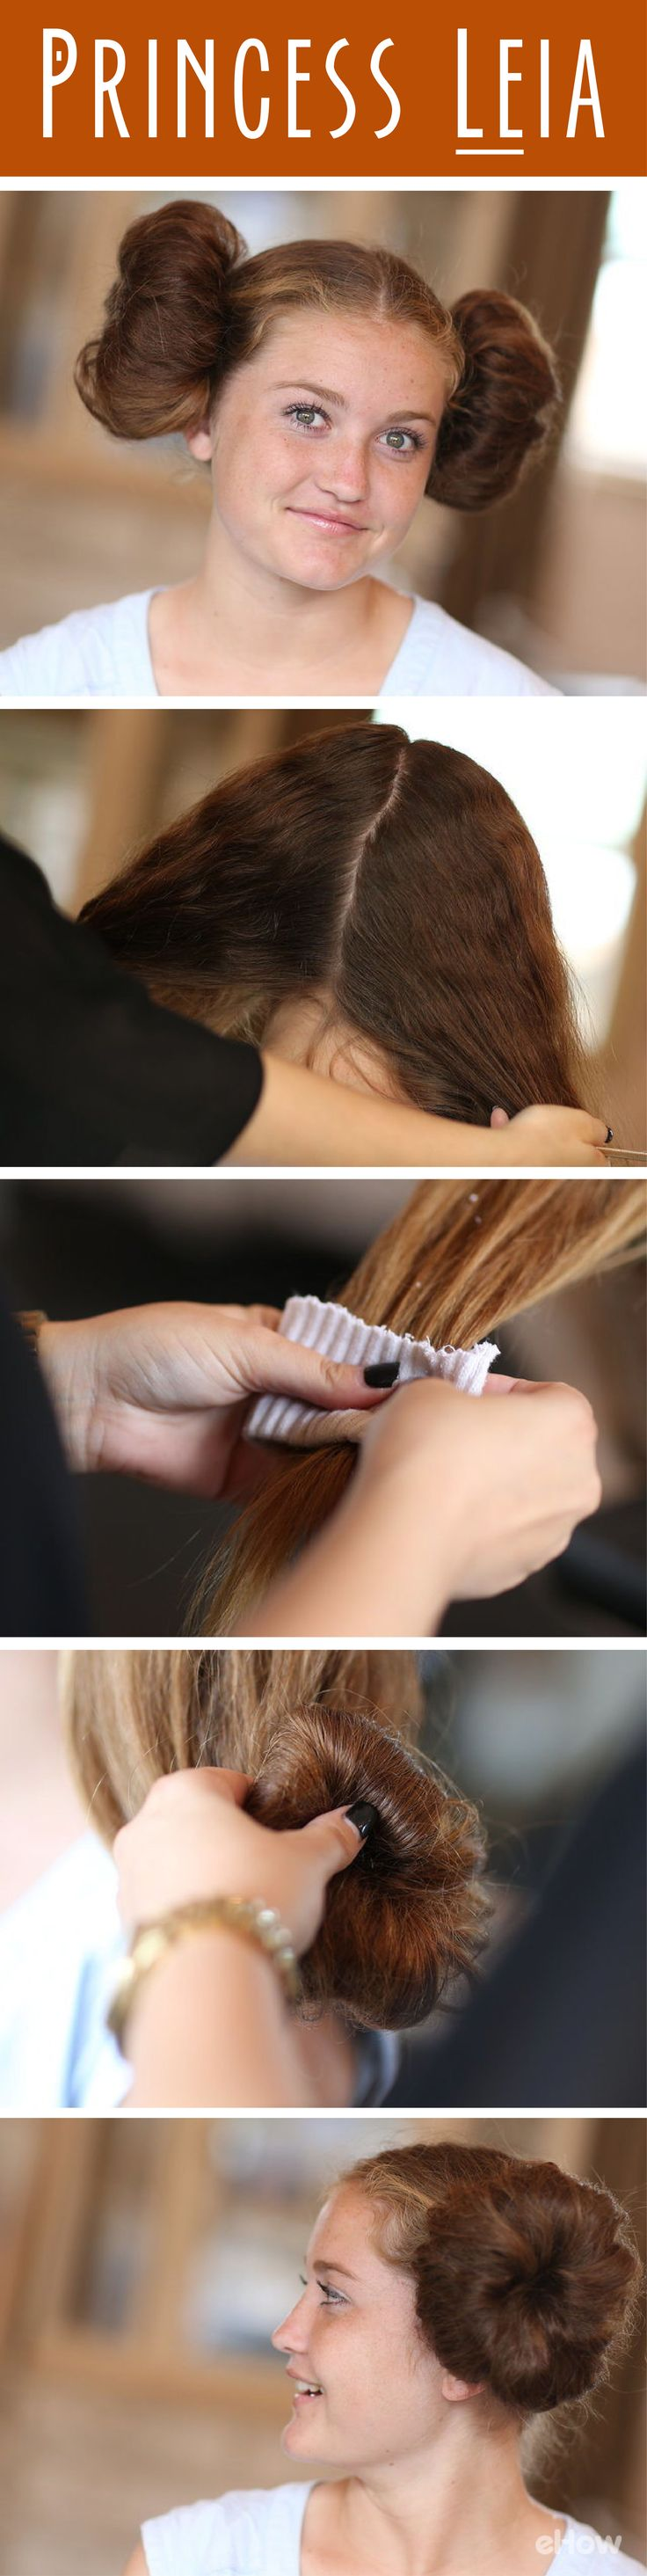 This classic Princess Leia look is easy to do with your own hair! Star Wars is going to be a big this Halloween, so this look is perfect. http://www.ehow.com/how_7654703_do-princess-leias-hair.html?utm_source=pinterest.com&utm_medium=referral&utm_content=freestyle&utm_campaign=fanpage